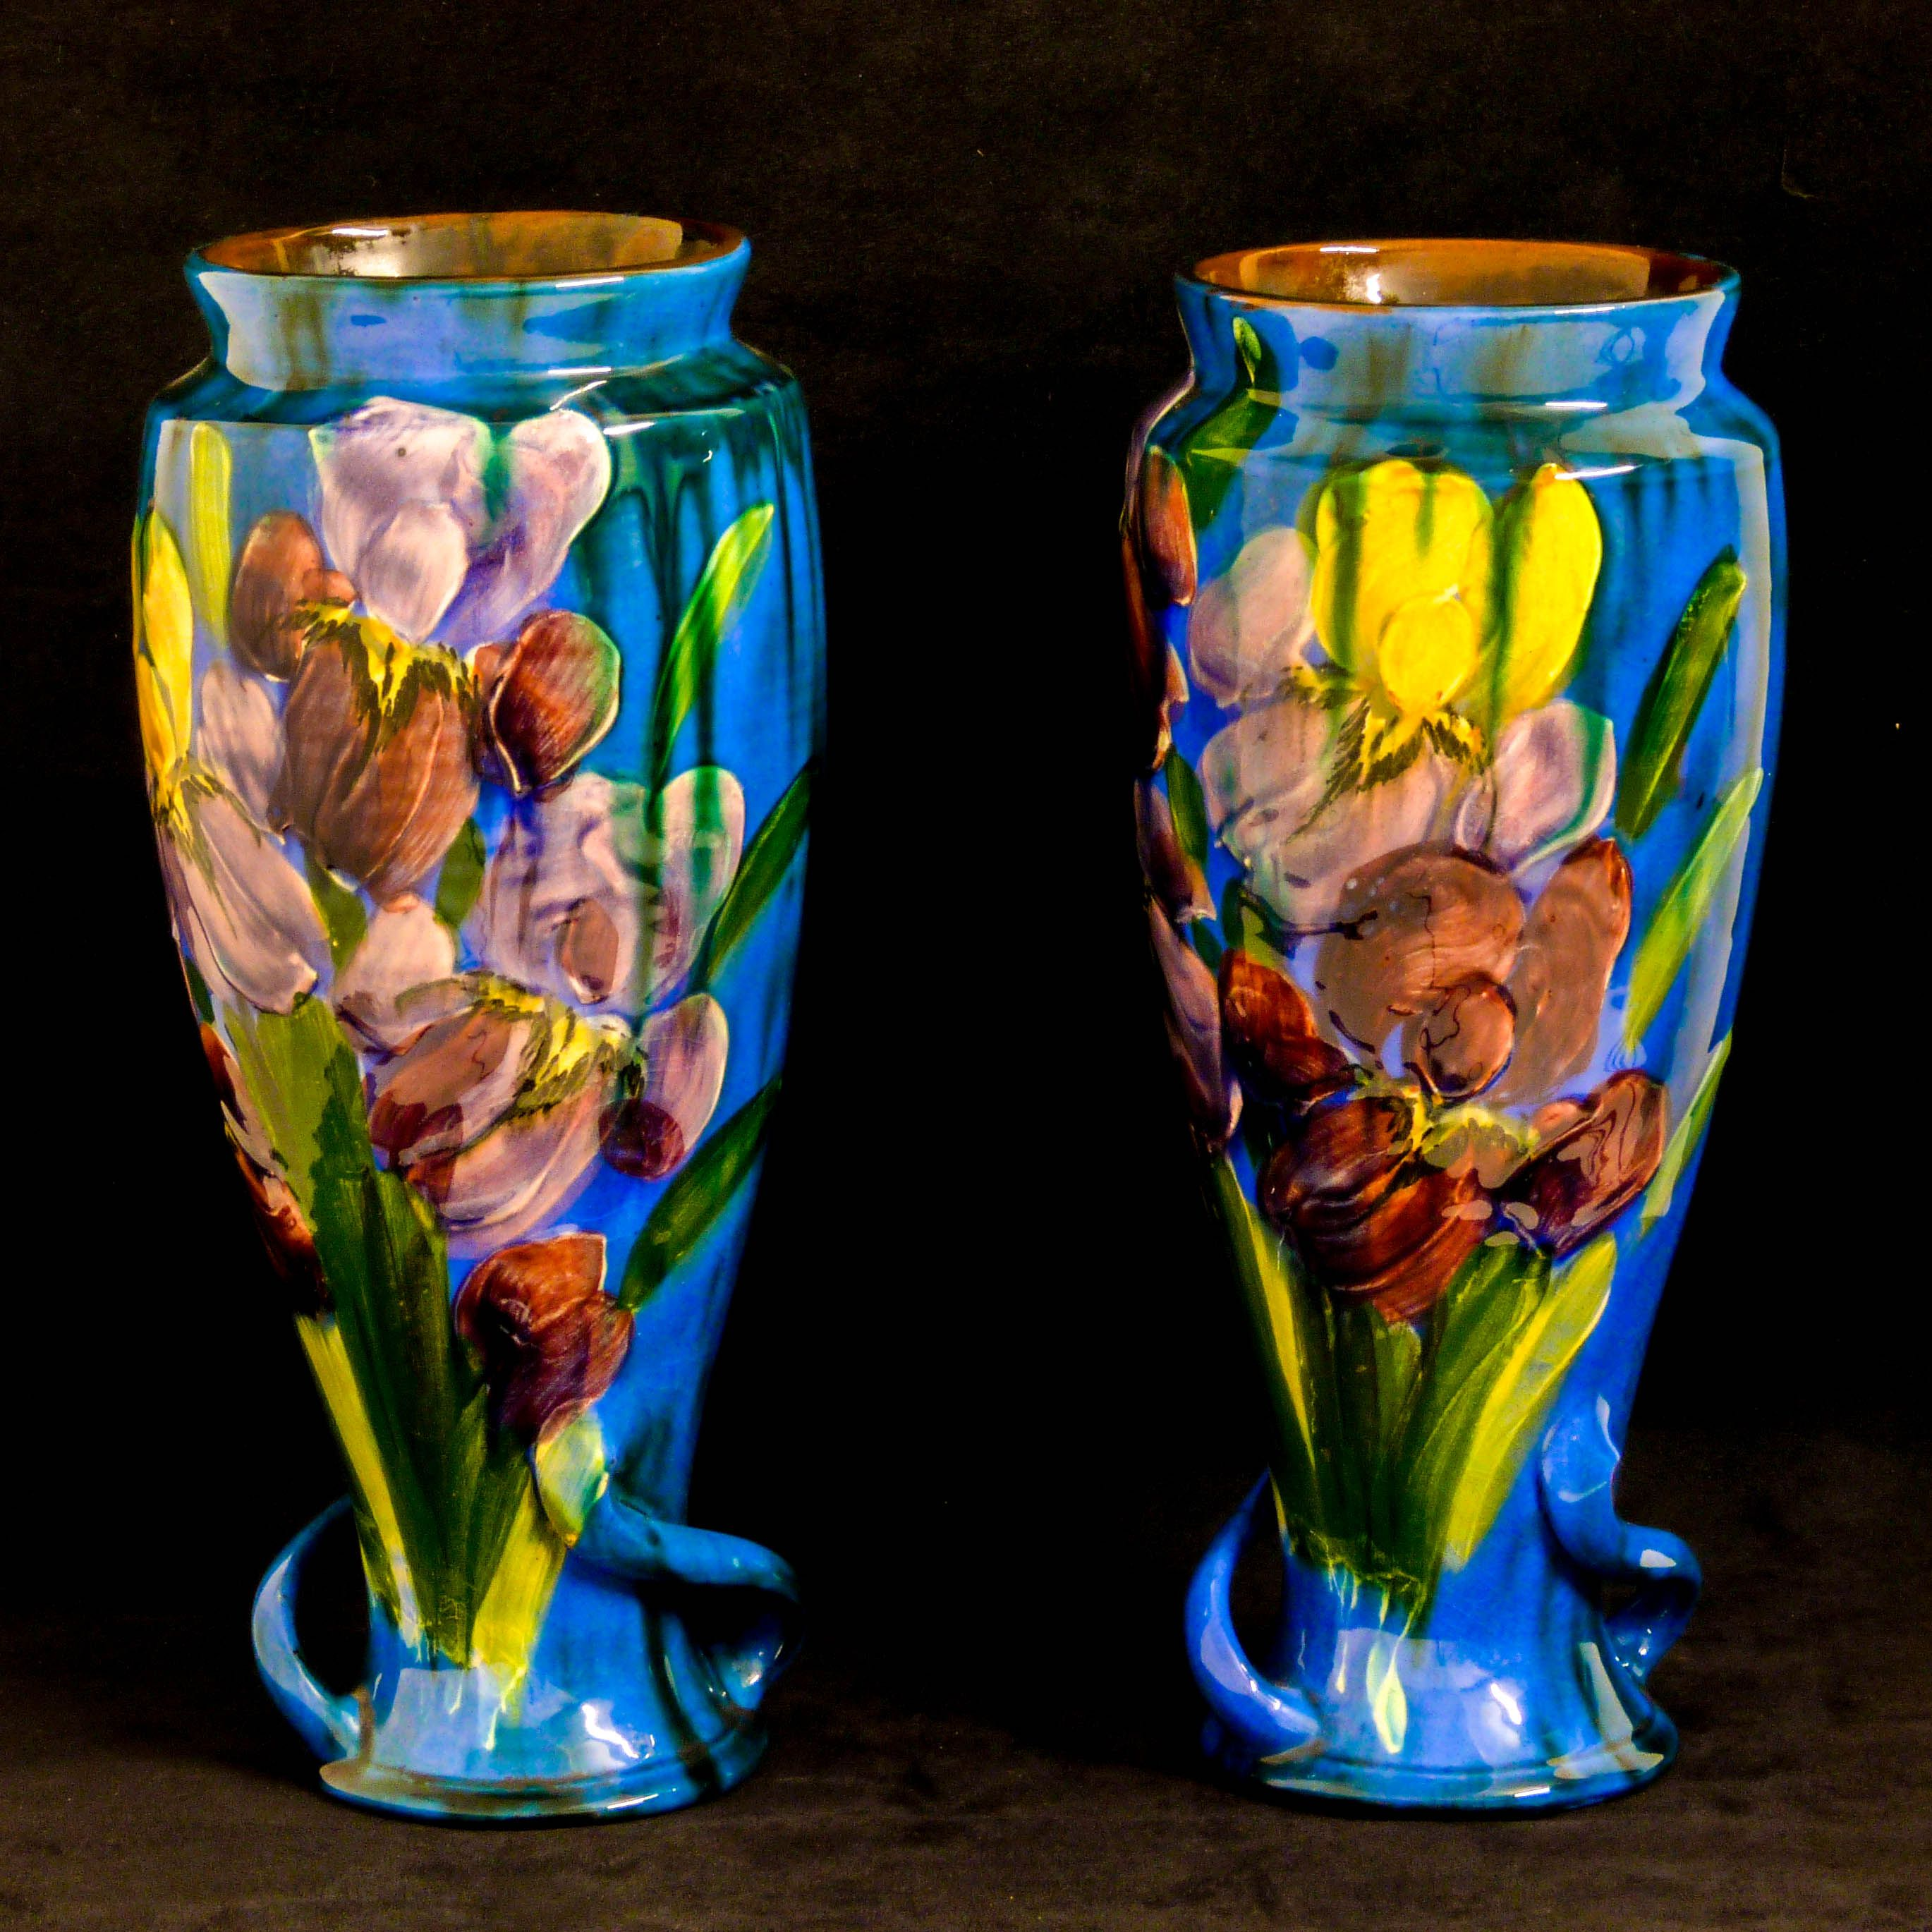 A pair of antique art nouveau vases in the manner of moorcroft a pair of antique art nouveau vases in the manner of moorcroft reading torquay pottery underneath reviewsmspy